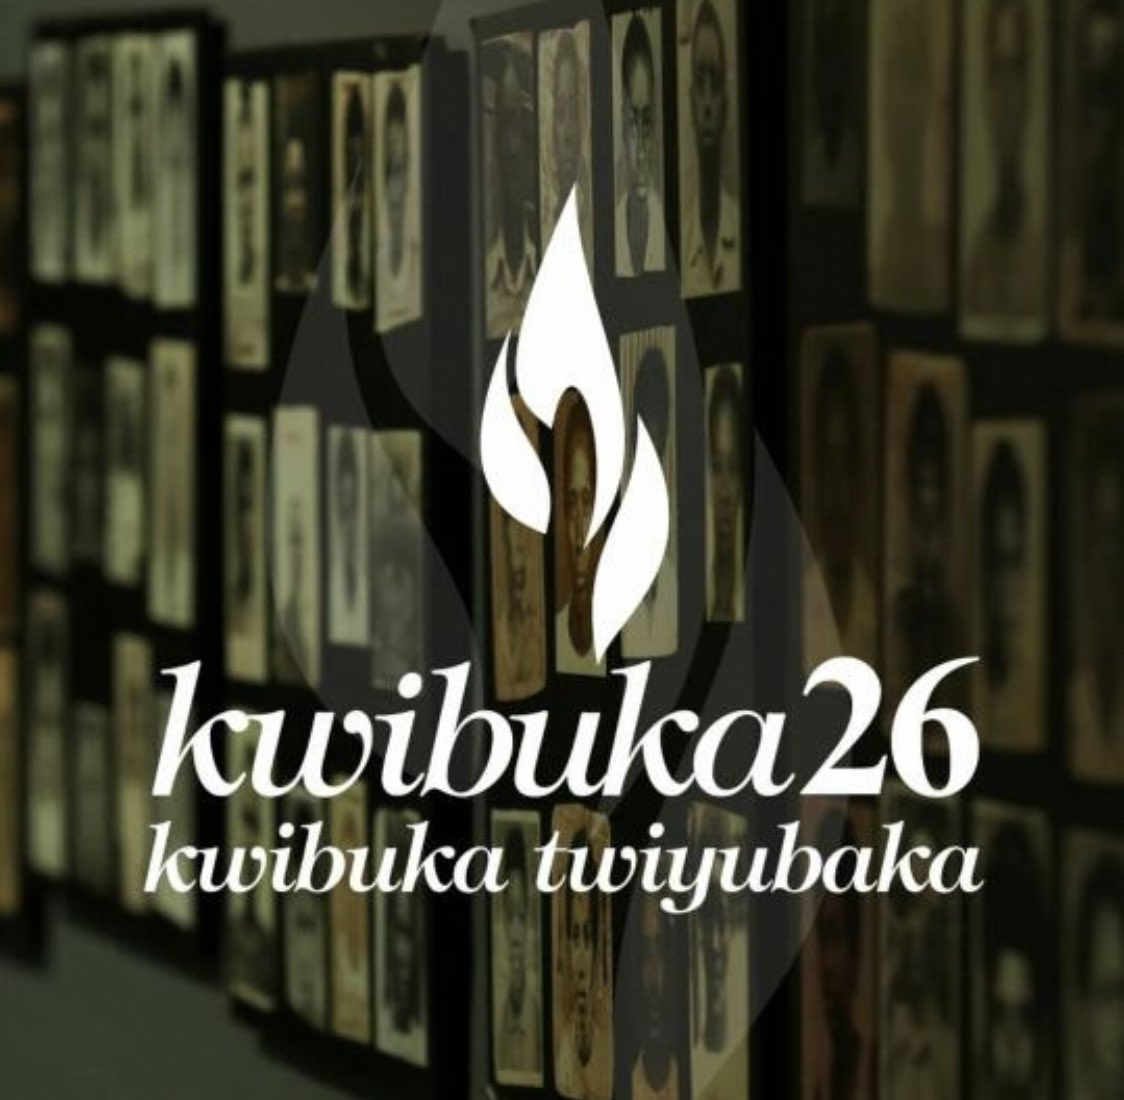 It's that time of the year again,the nights are longer,the hearts are heavier. As we start our commemoration of the 1994 Genocide against the Tutsi in Rwanda let's remember to be respectful,thoughtful and easy on each other #Kwibuka26